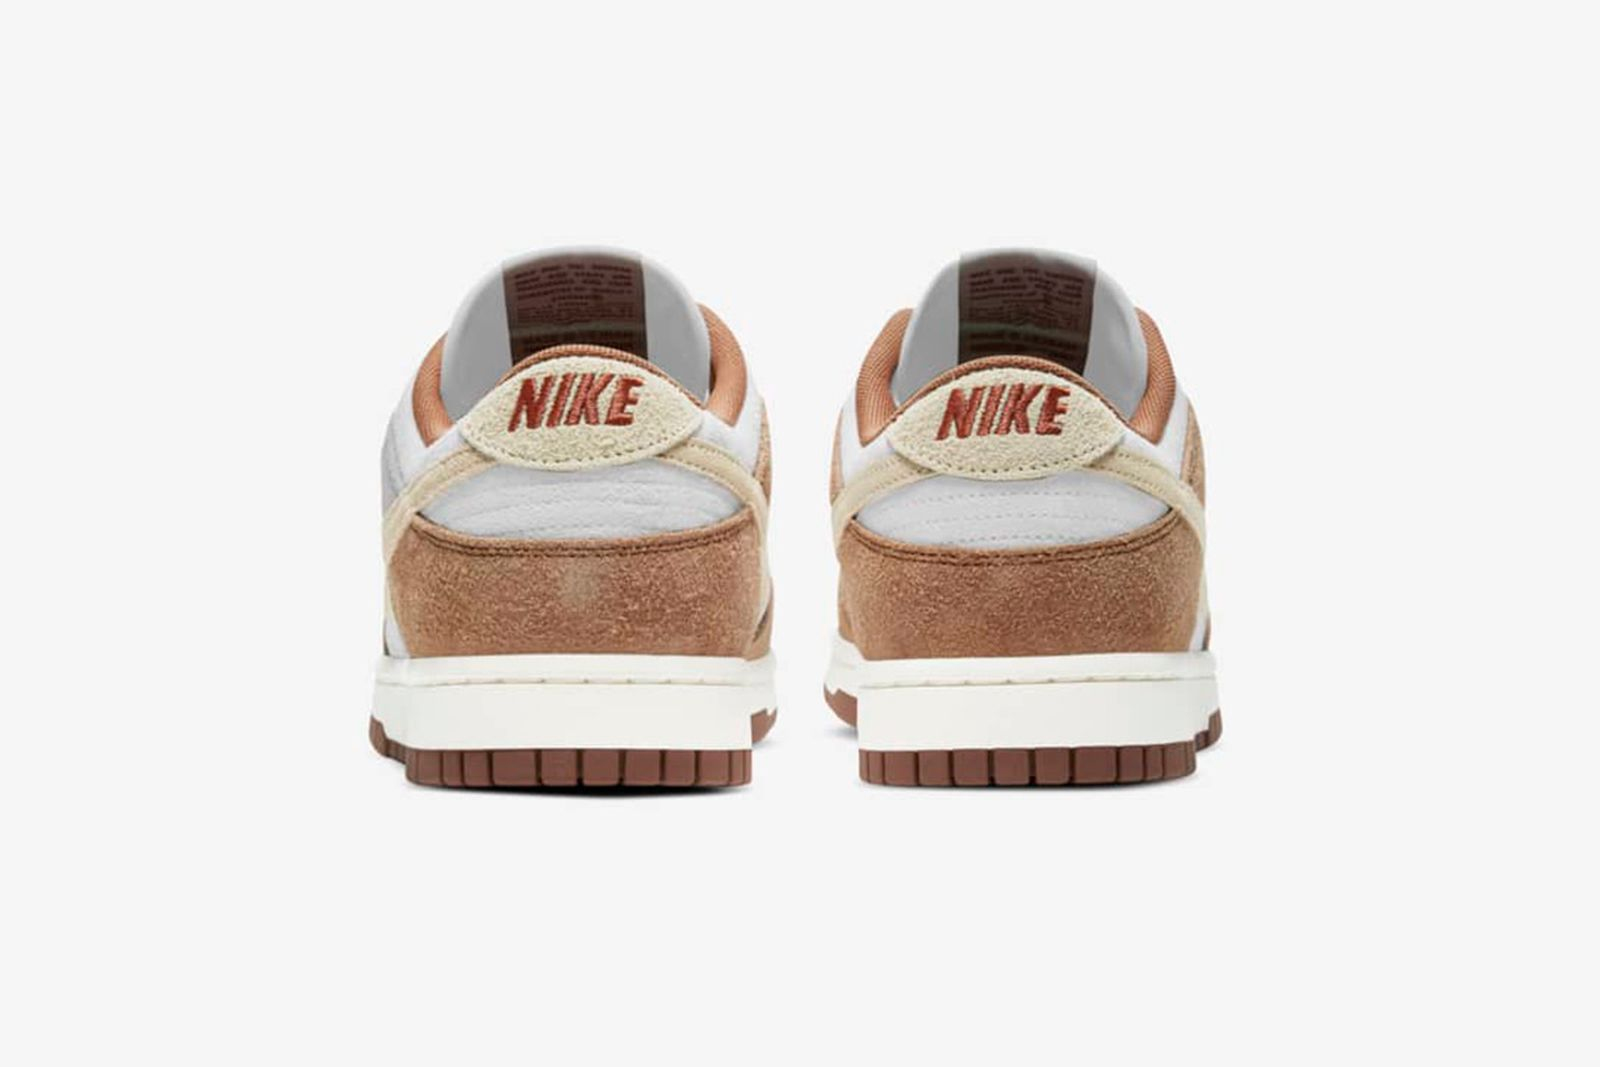 nike-dunk-low-medium-curry-release-info-07